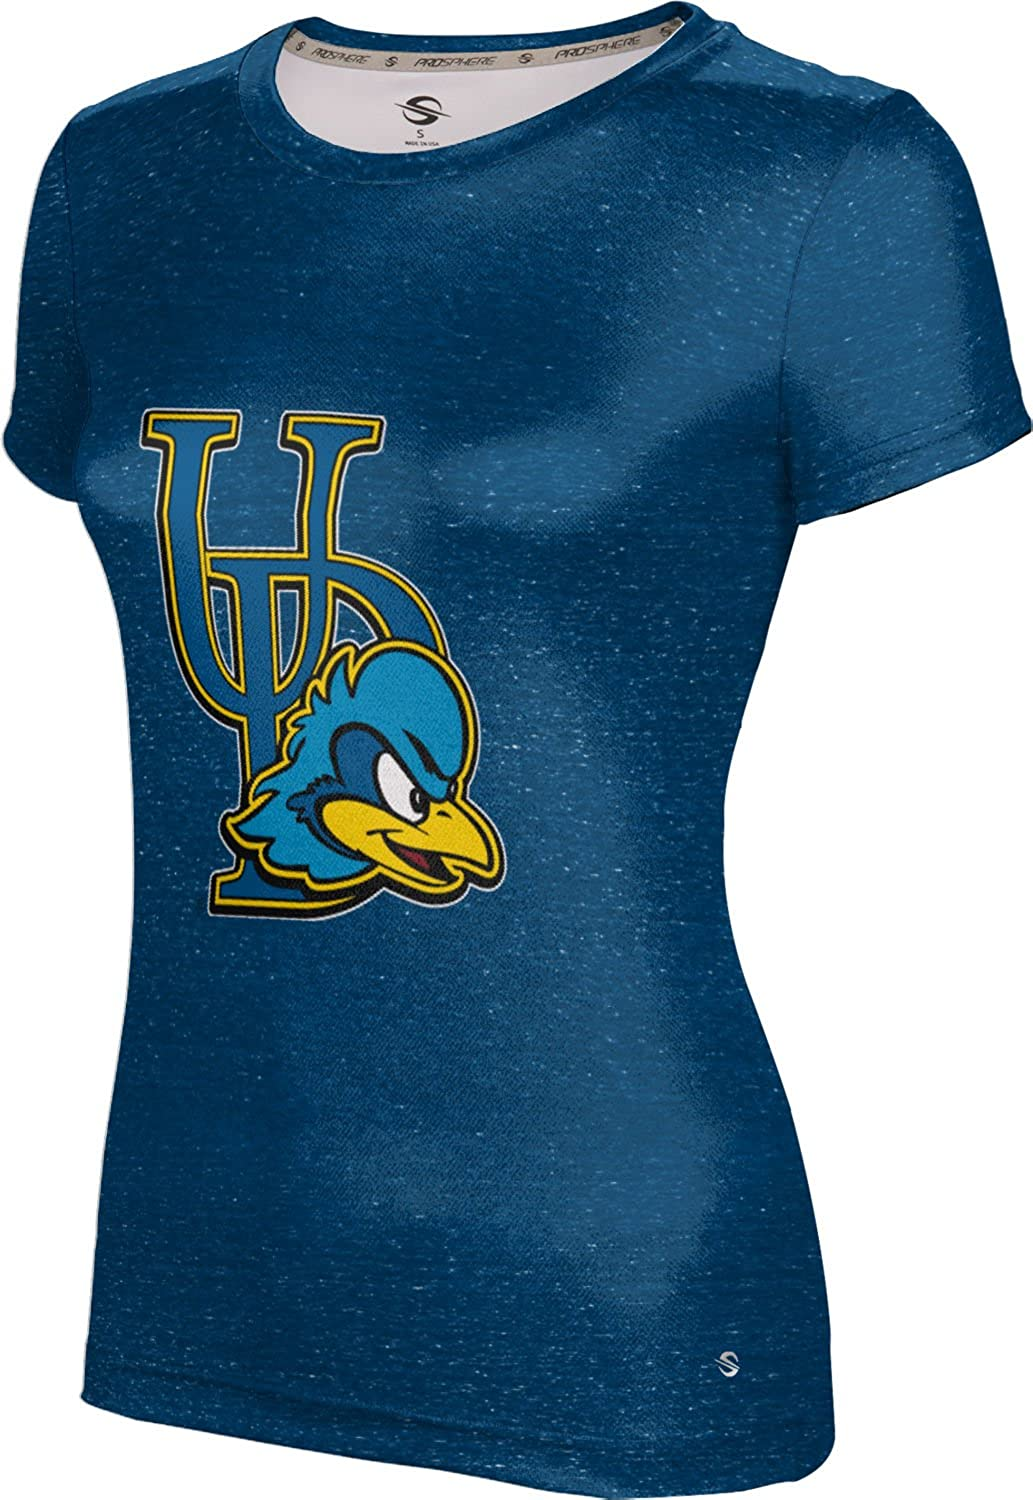 ProSphere OFFicial site University of Delaware Girls' T-Shirt Performance Hea Some reservation